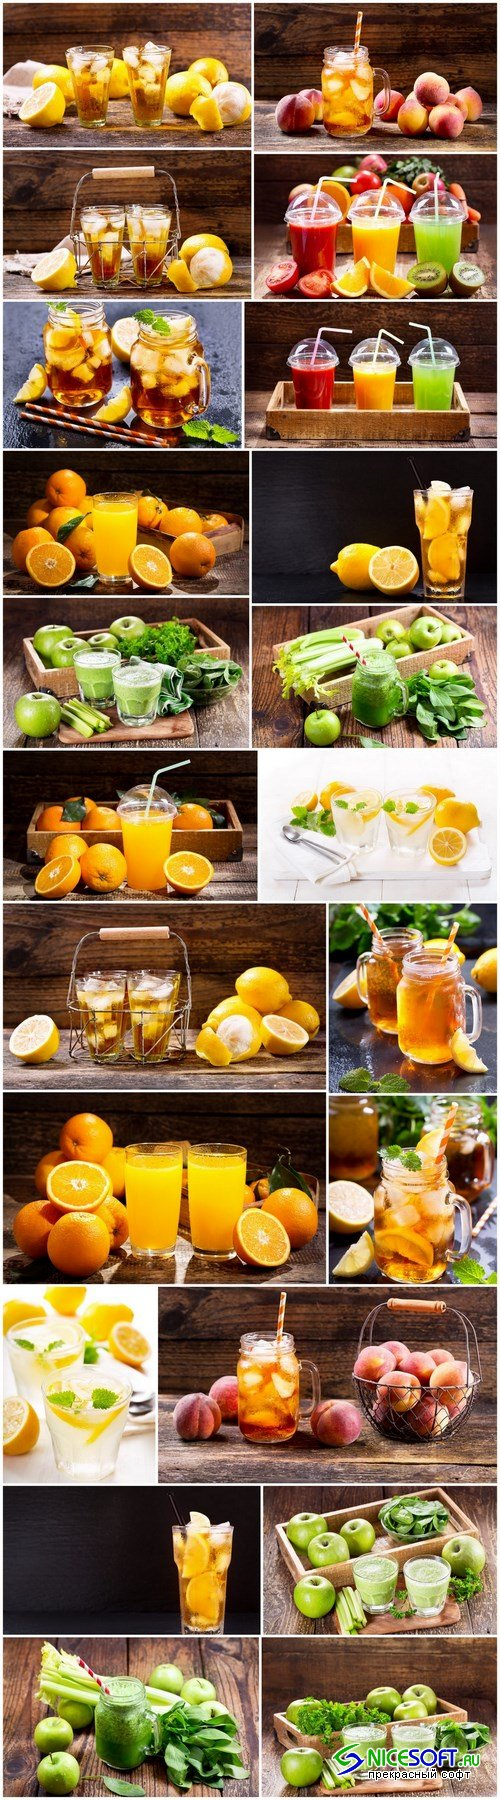 Fresh juices with fruits and vegetables - 22xUHQ JPEG Photo Stock